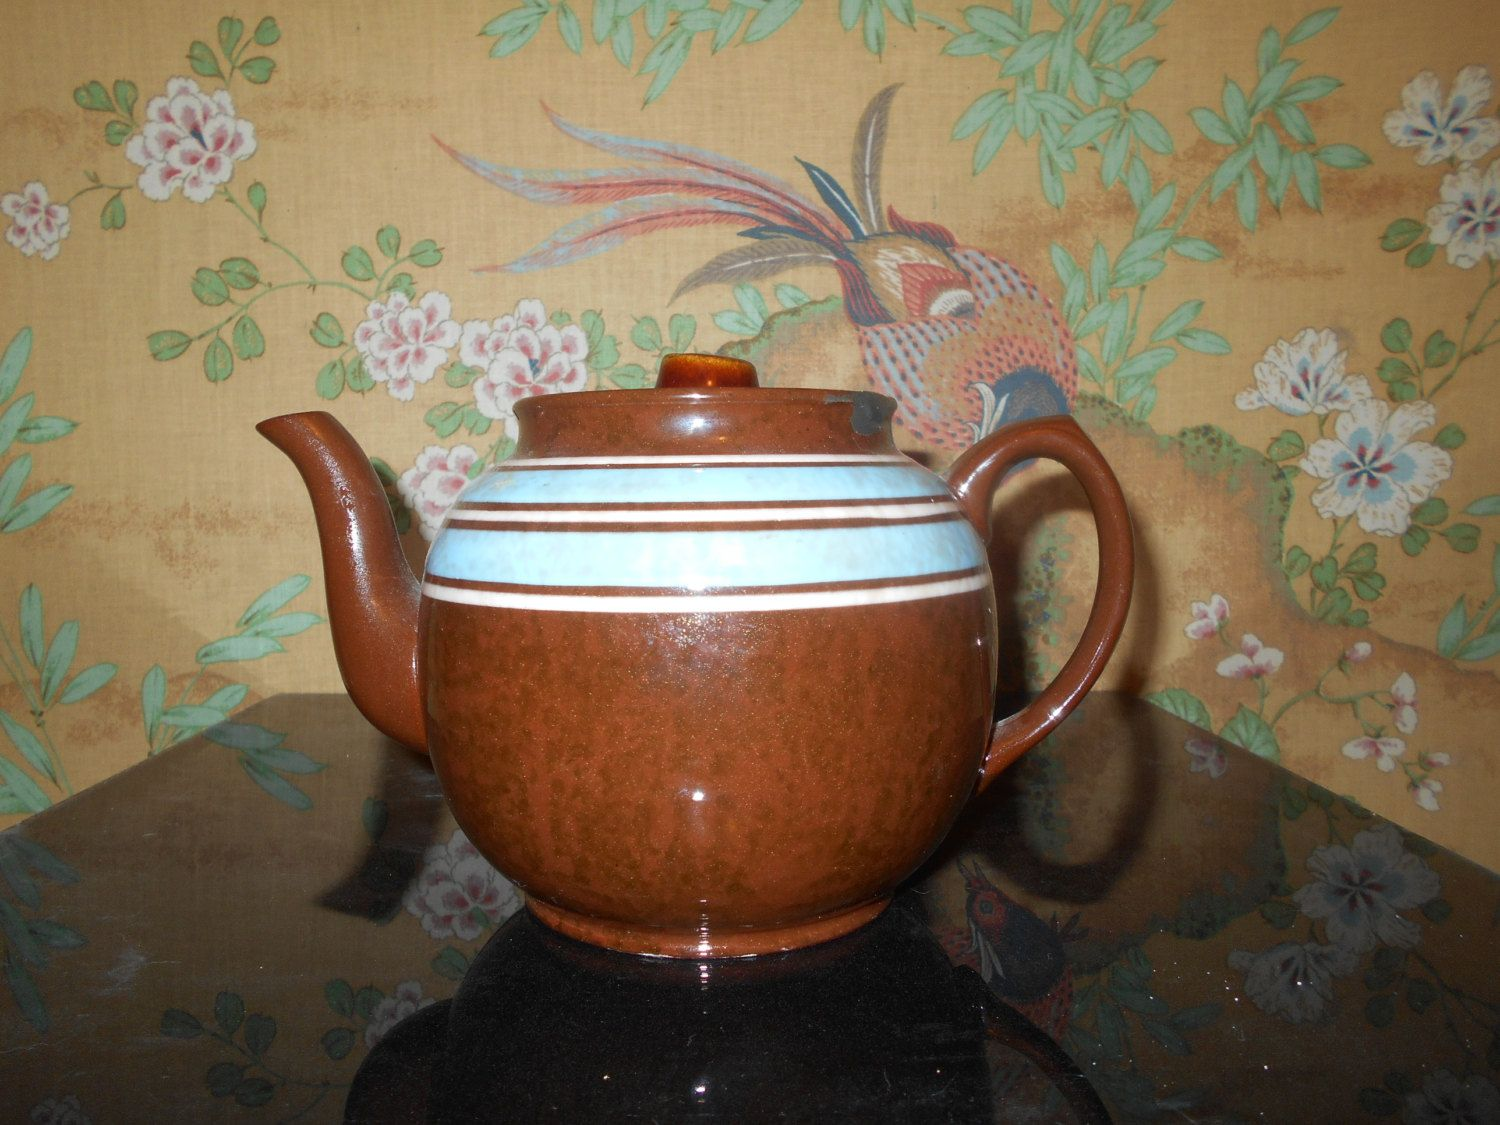 Making Tea In A Teapot Sadler Teapot Made In Staffordshire England Brown By